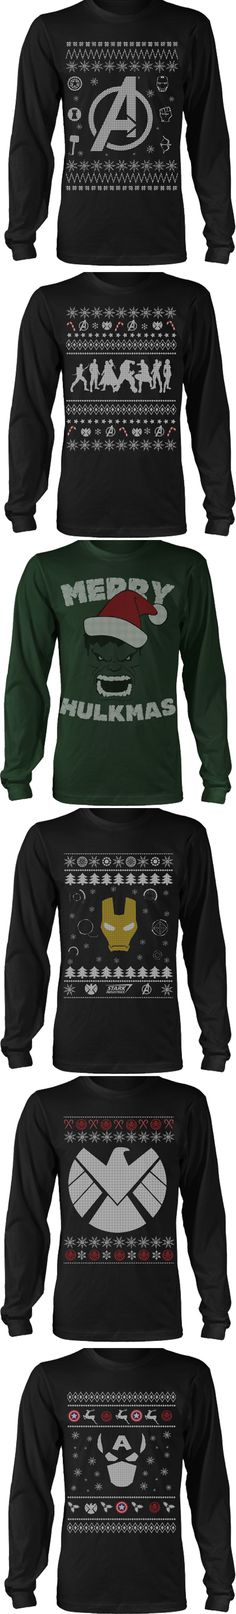 LIMITED EDITION Avengers Ugly Sweater designs.